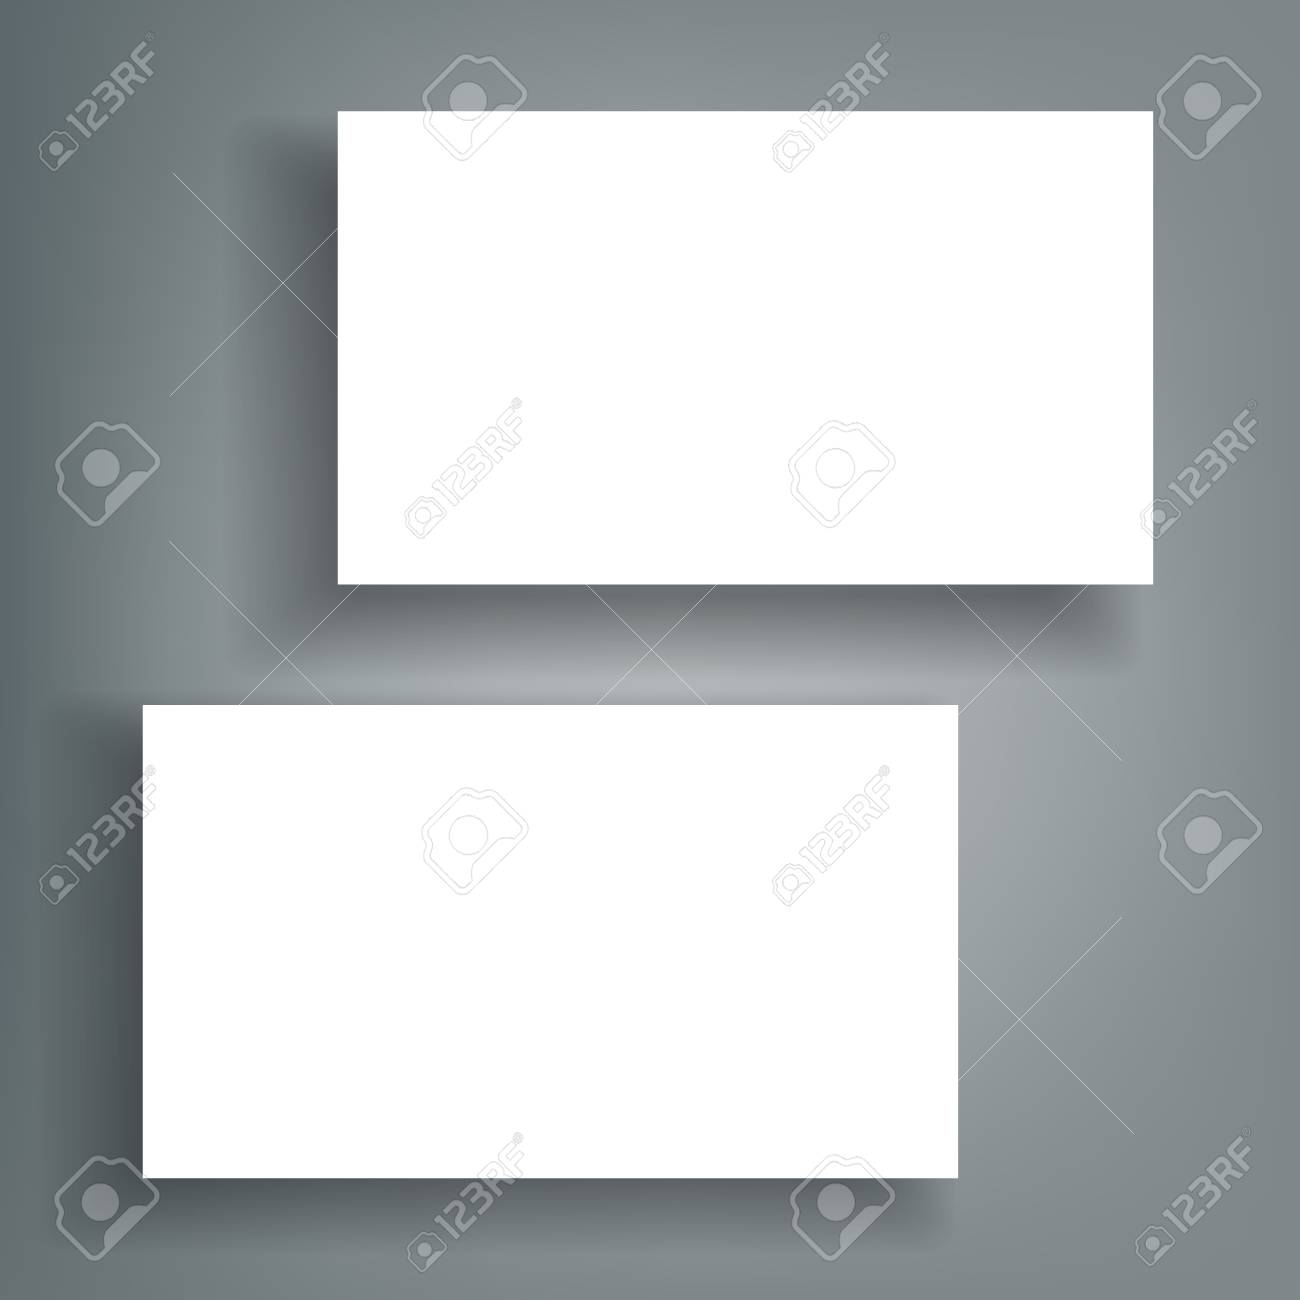 Business card blank with shadow mockup cover template royalty free business card blank with shadow mockup cover template stock vector 95018879 wajeb Image collections